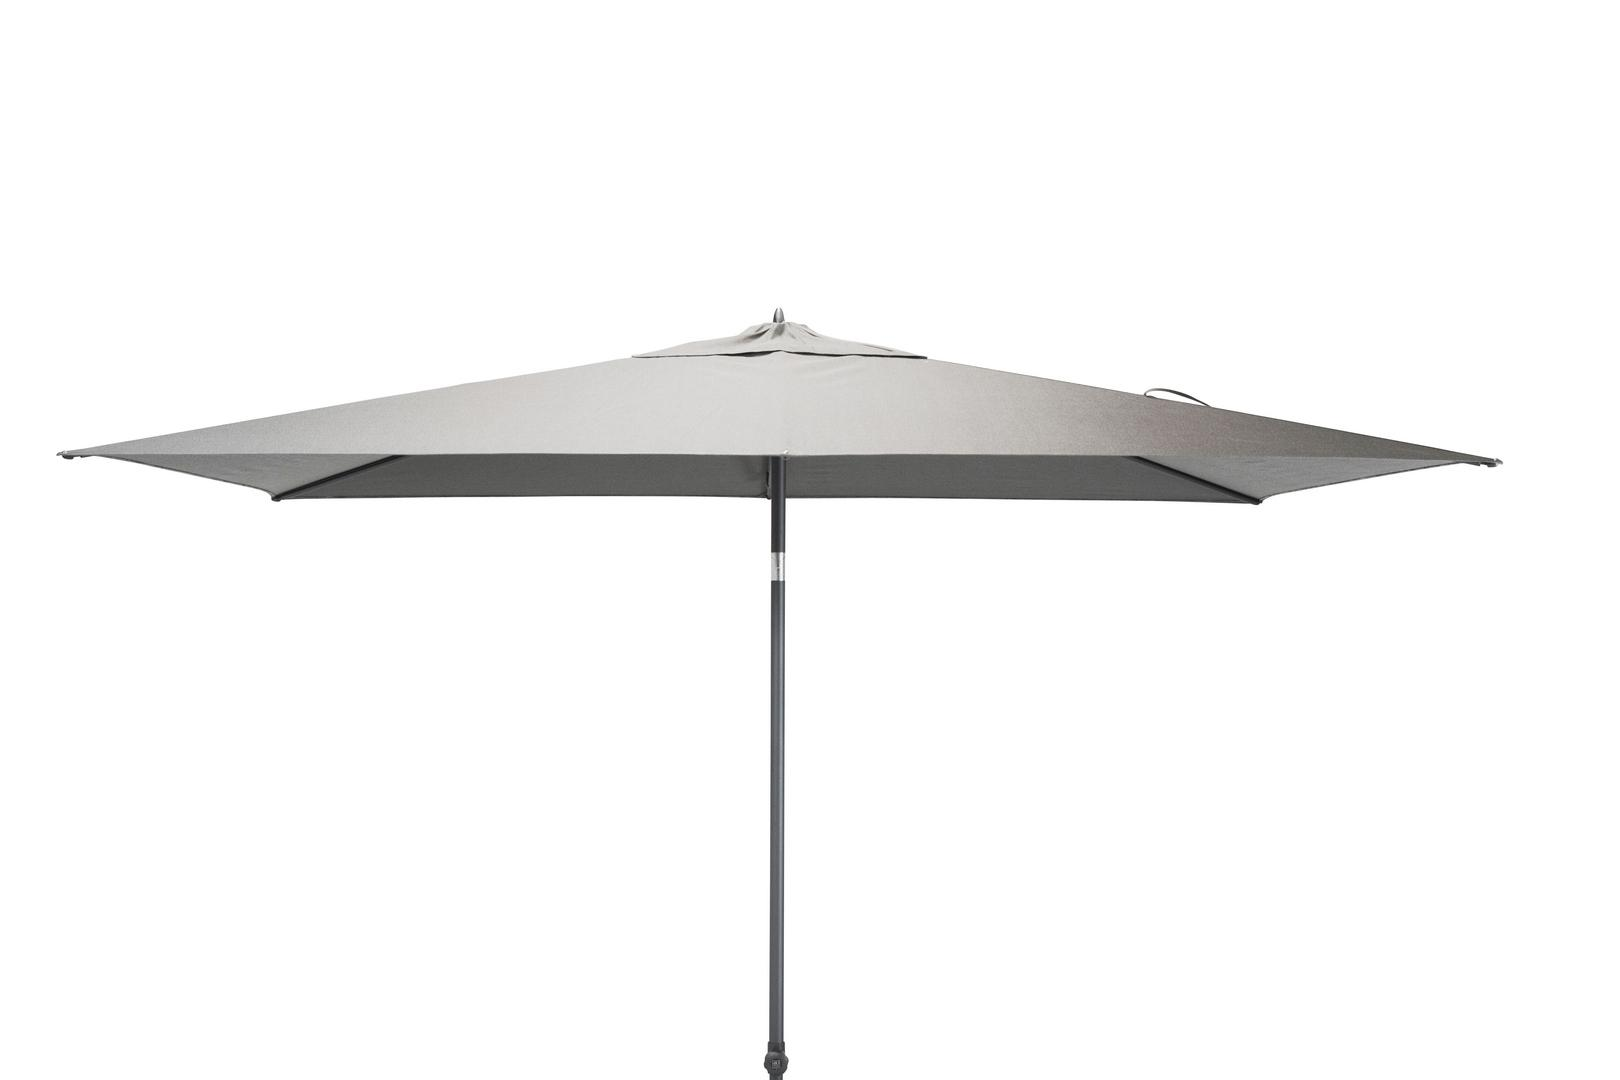 4 Seasons Outdoor Azzurro 2 x 3m parasol Mid Grey